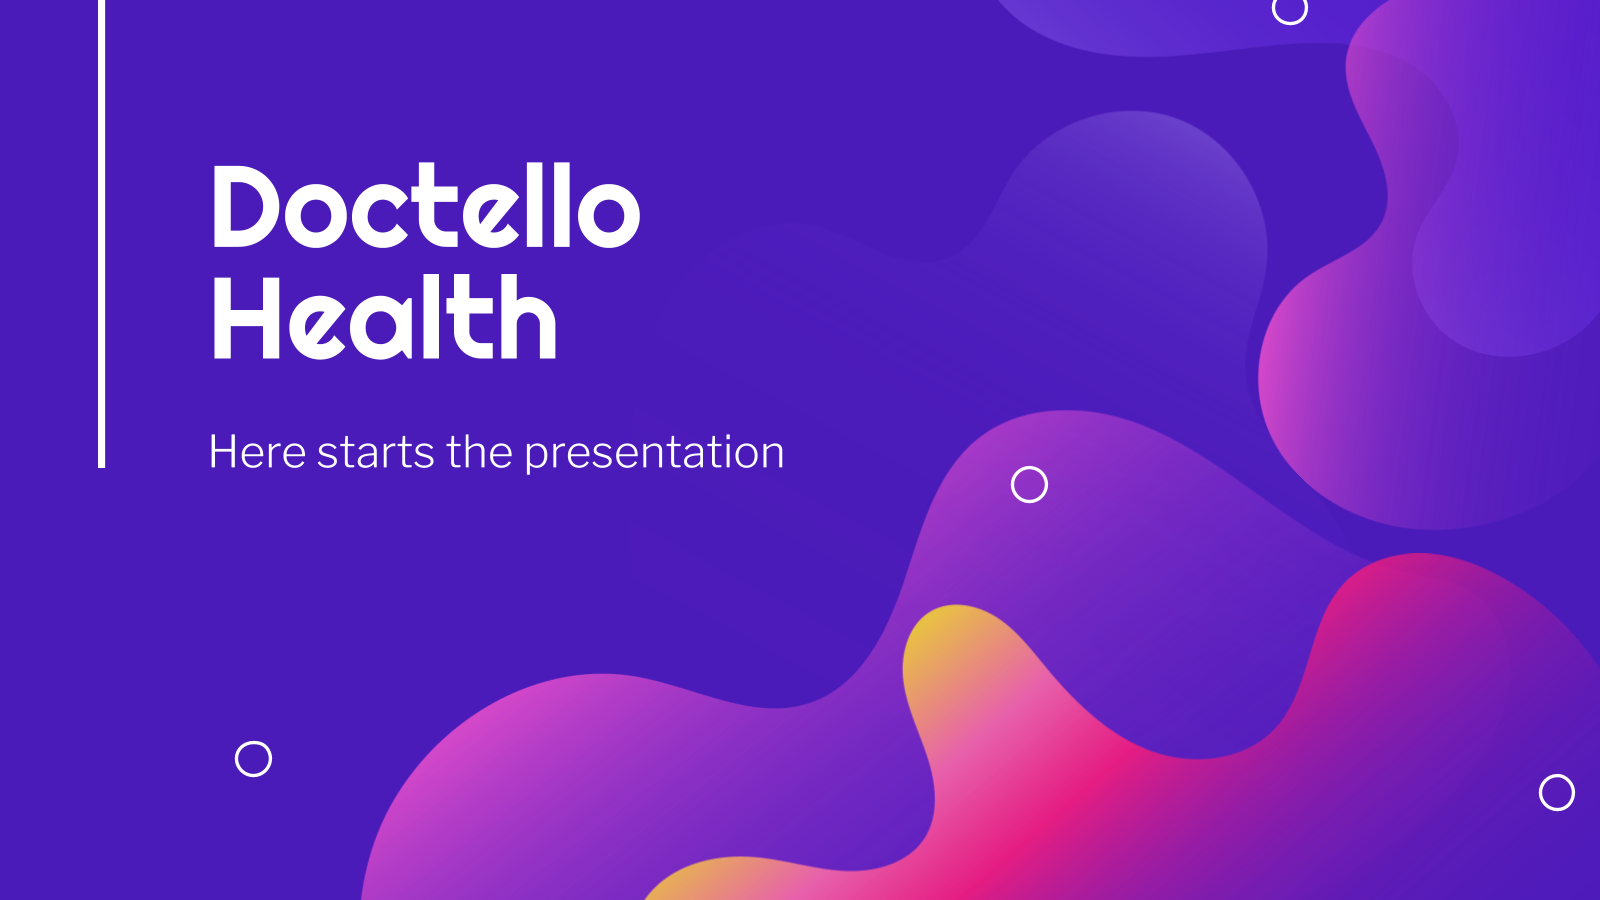 Doctello Health presentation template